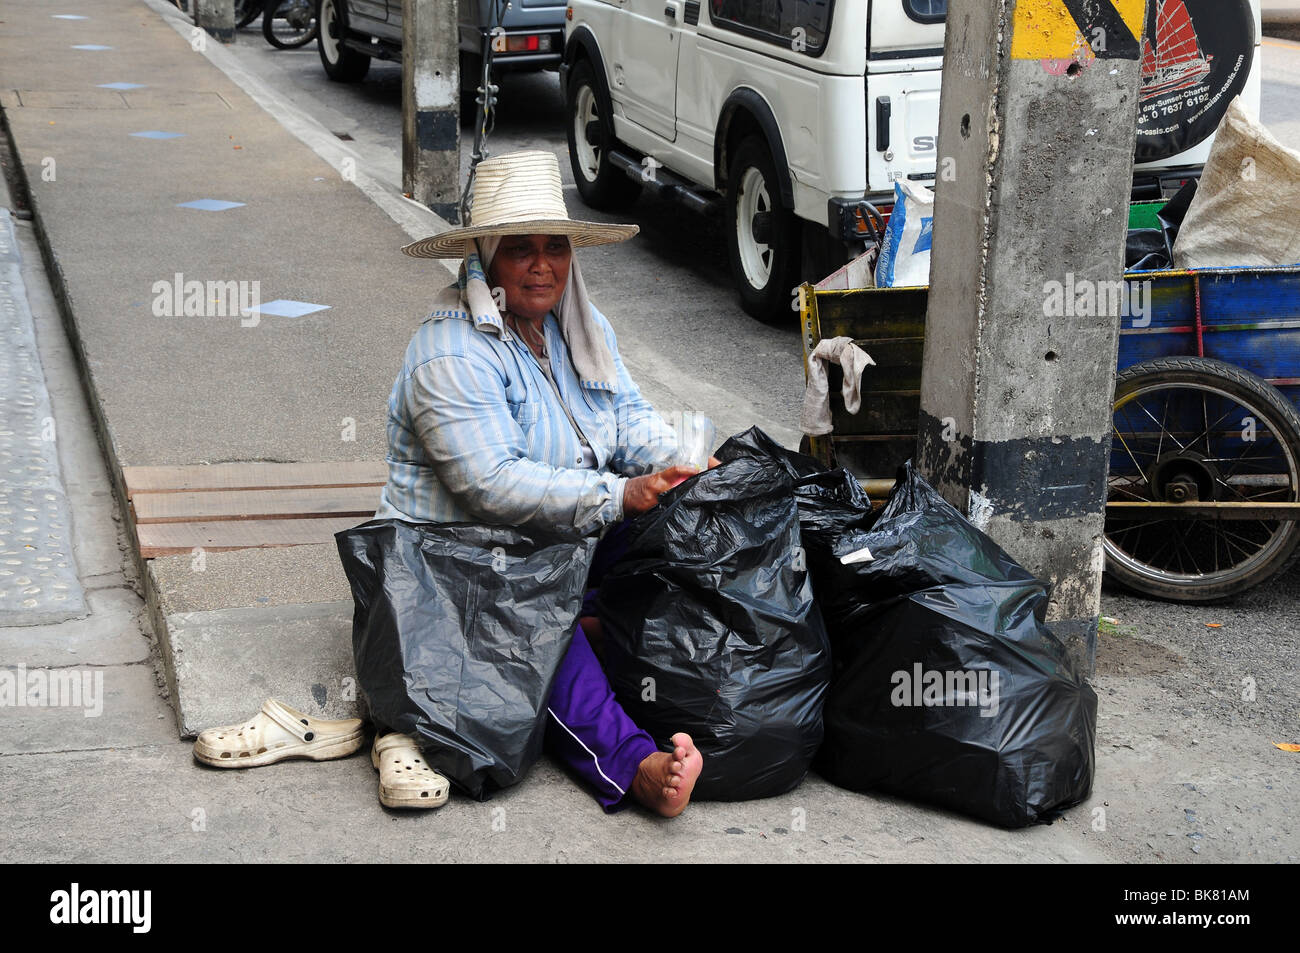 Poor person in Thailand sifting through rubbish - Stock Image